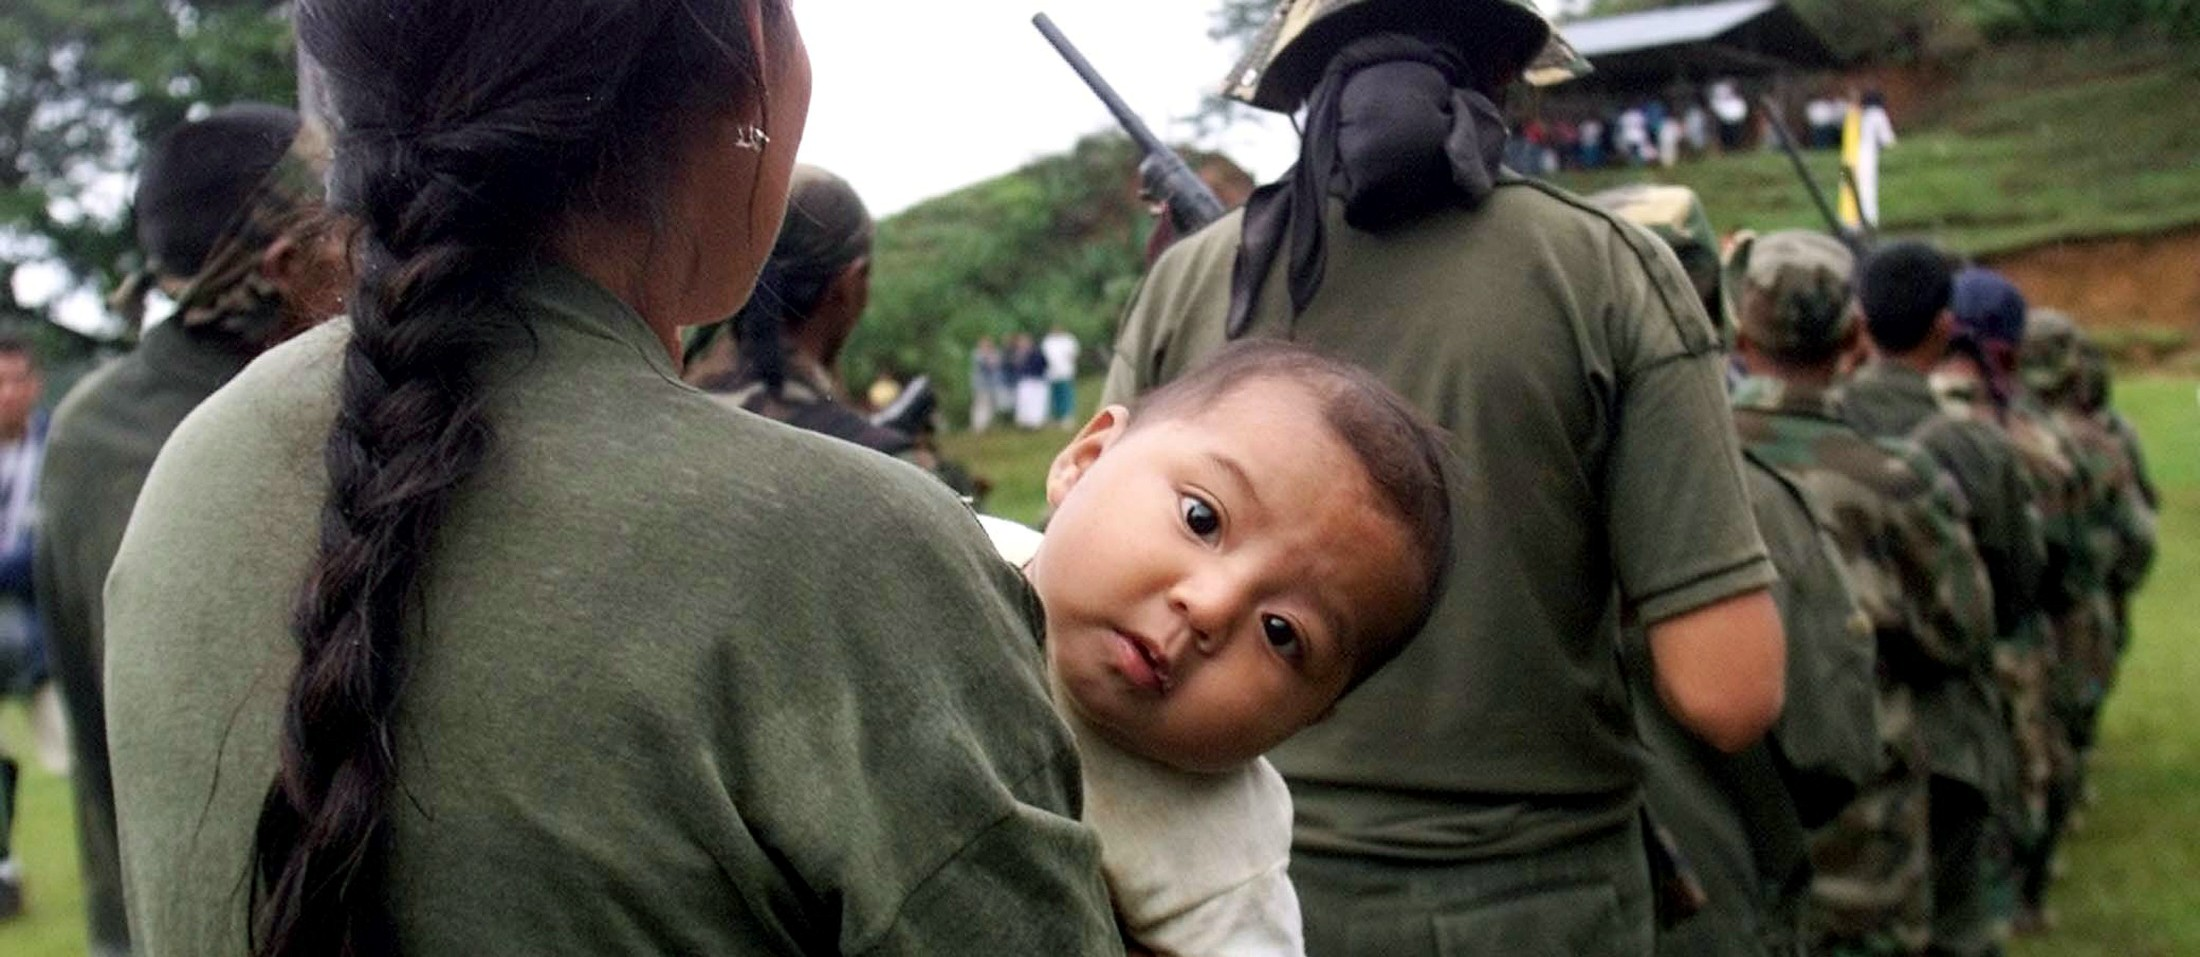 A peasant member of a self-defense group holds her baby before surrender her weapon in Ortega, Cauca province, December 6, 2003. About 150 gunmen from a little-known Colombian militia laid down their weapons on December 7, latching onto a fledgling and controversial peace plan that the government hopes will end the far-right's war against Marxist rebels.